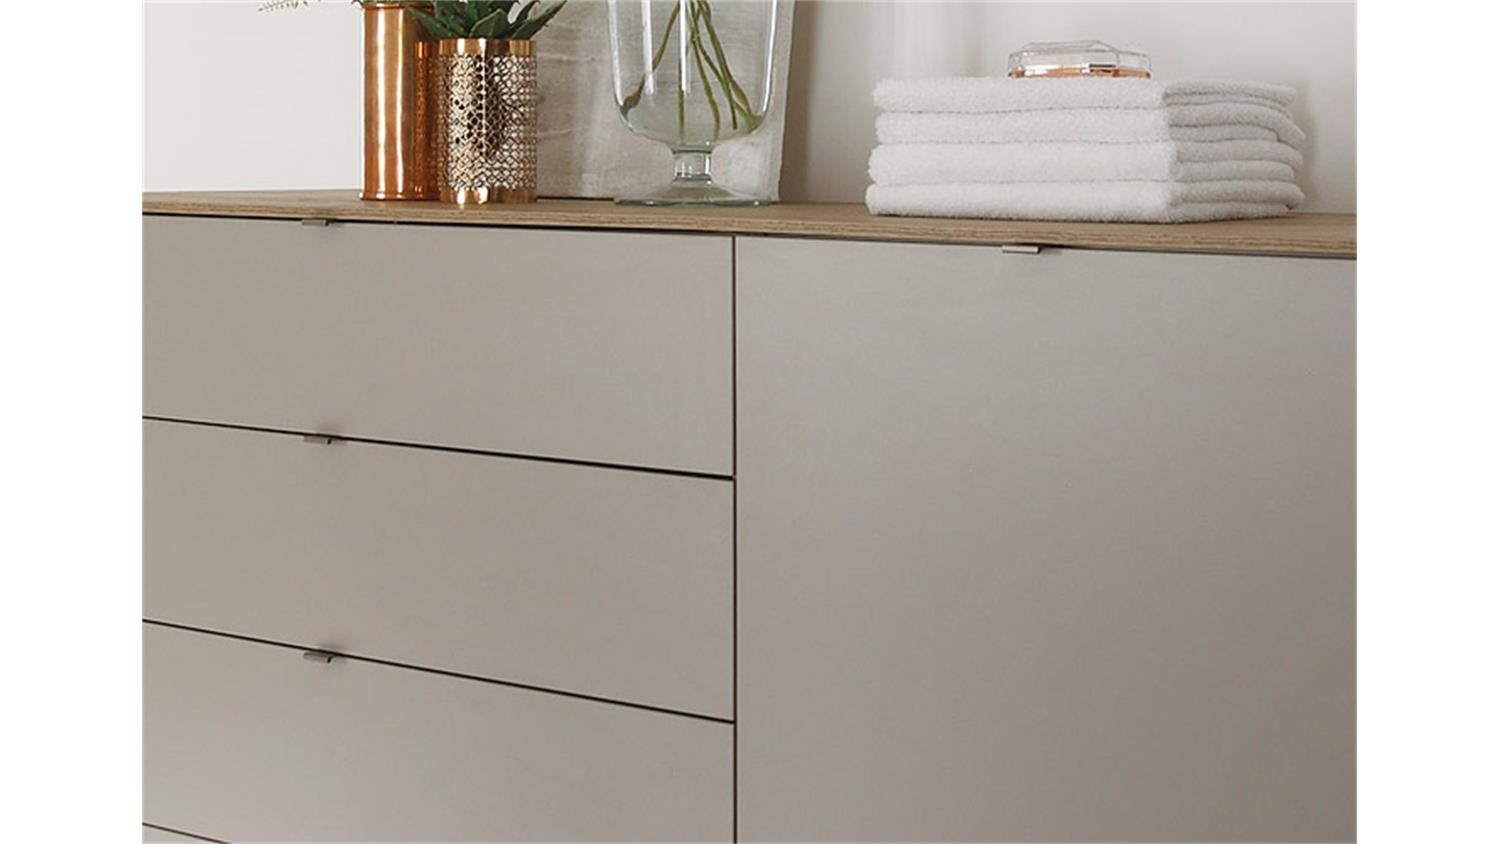 kommode sideboard pavos korpus in wei matt front in sandgrau hochglanz smash. Black Bedroom Furniture Sets. Home Design Ideas